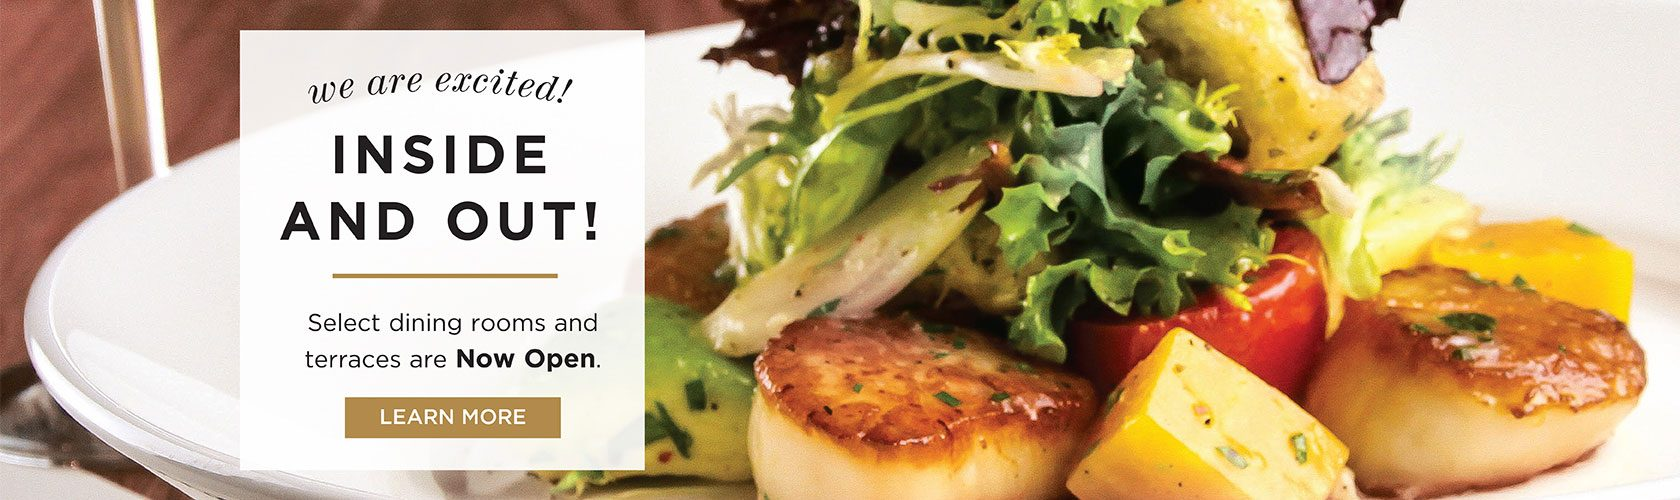 decorative image of scallops with lettuce on top and a message that reads We're Excited inside and out! Select dining rooms and terraces are now open! Learn More